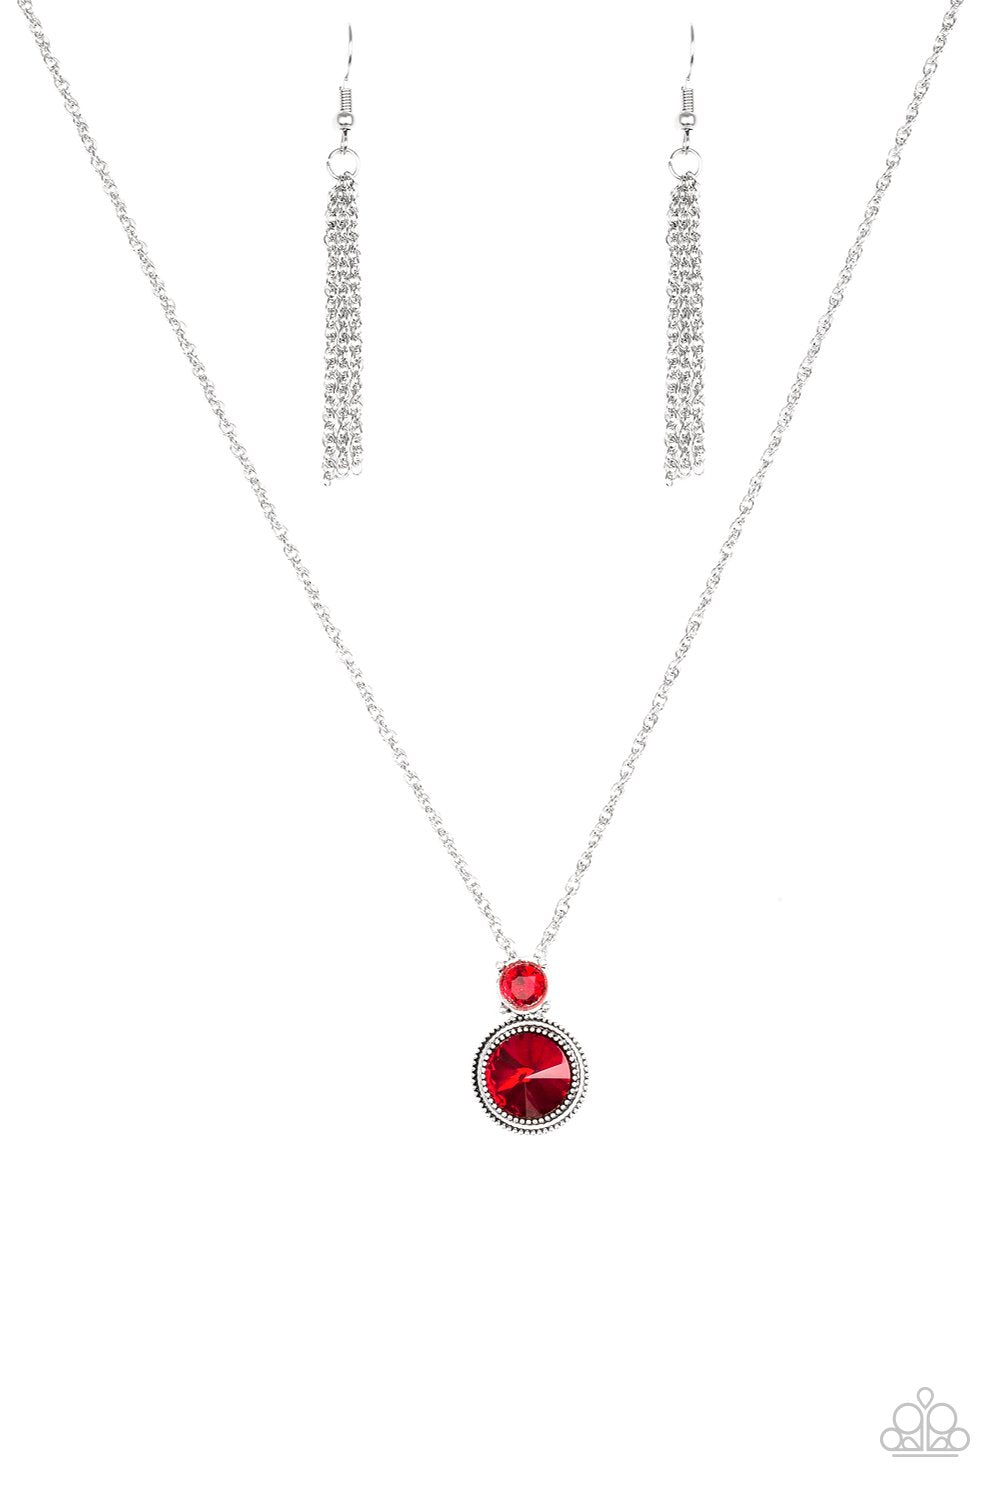 Paparazzi Accessories ~ Date Night Dazzle - Red